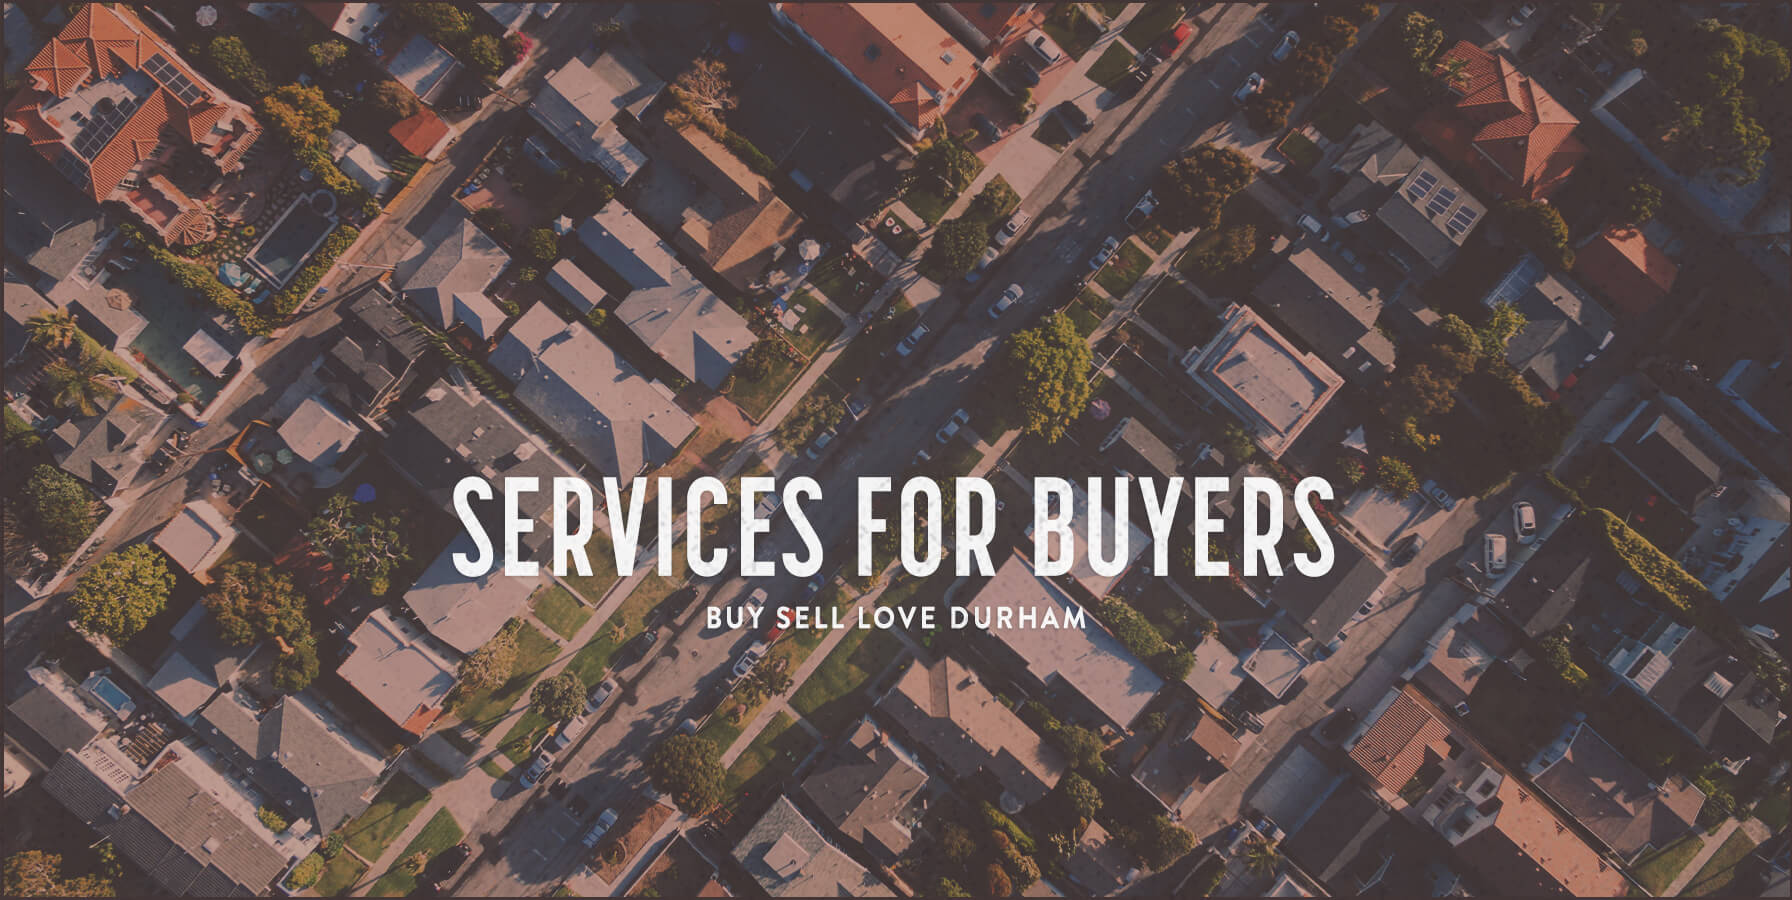 Services for Buyers